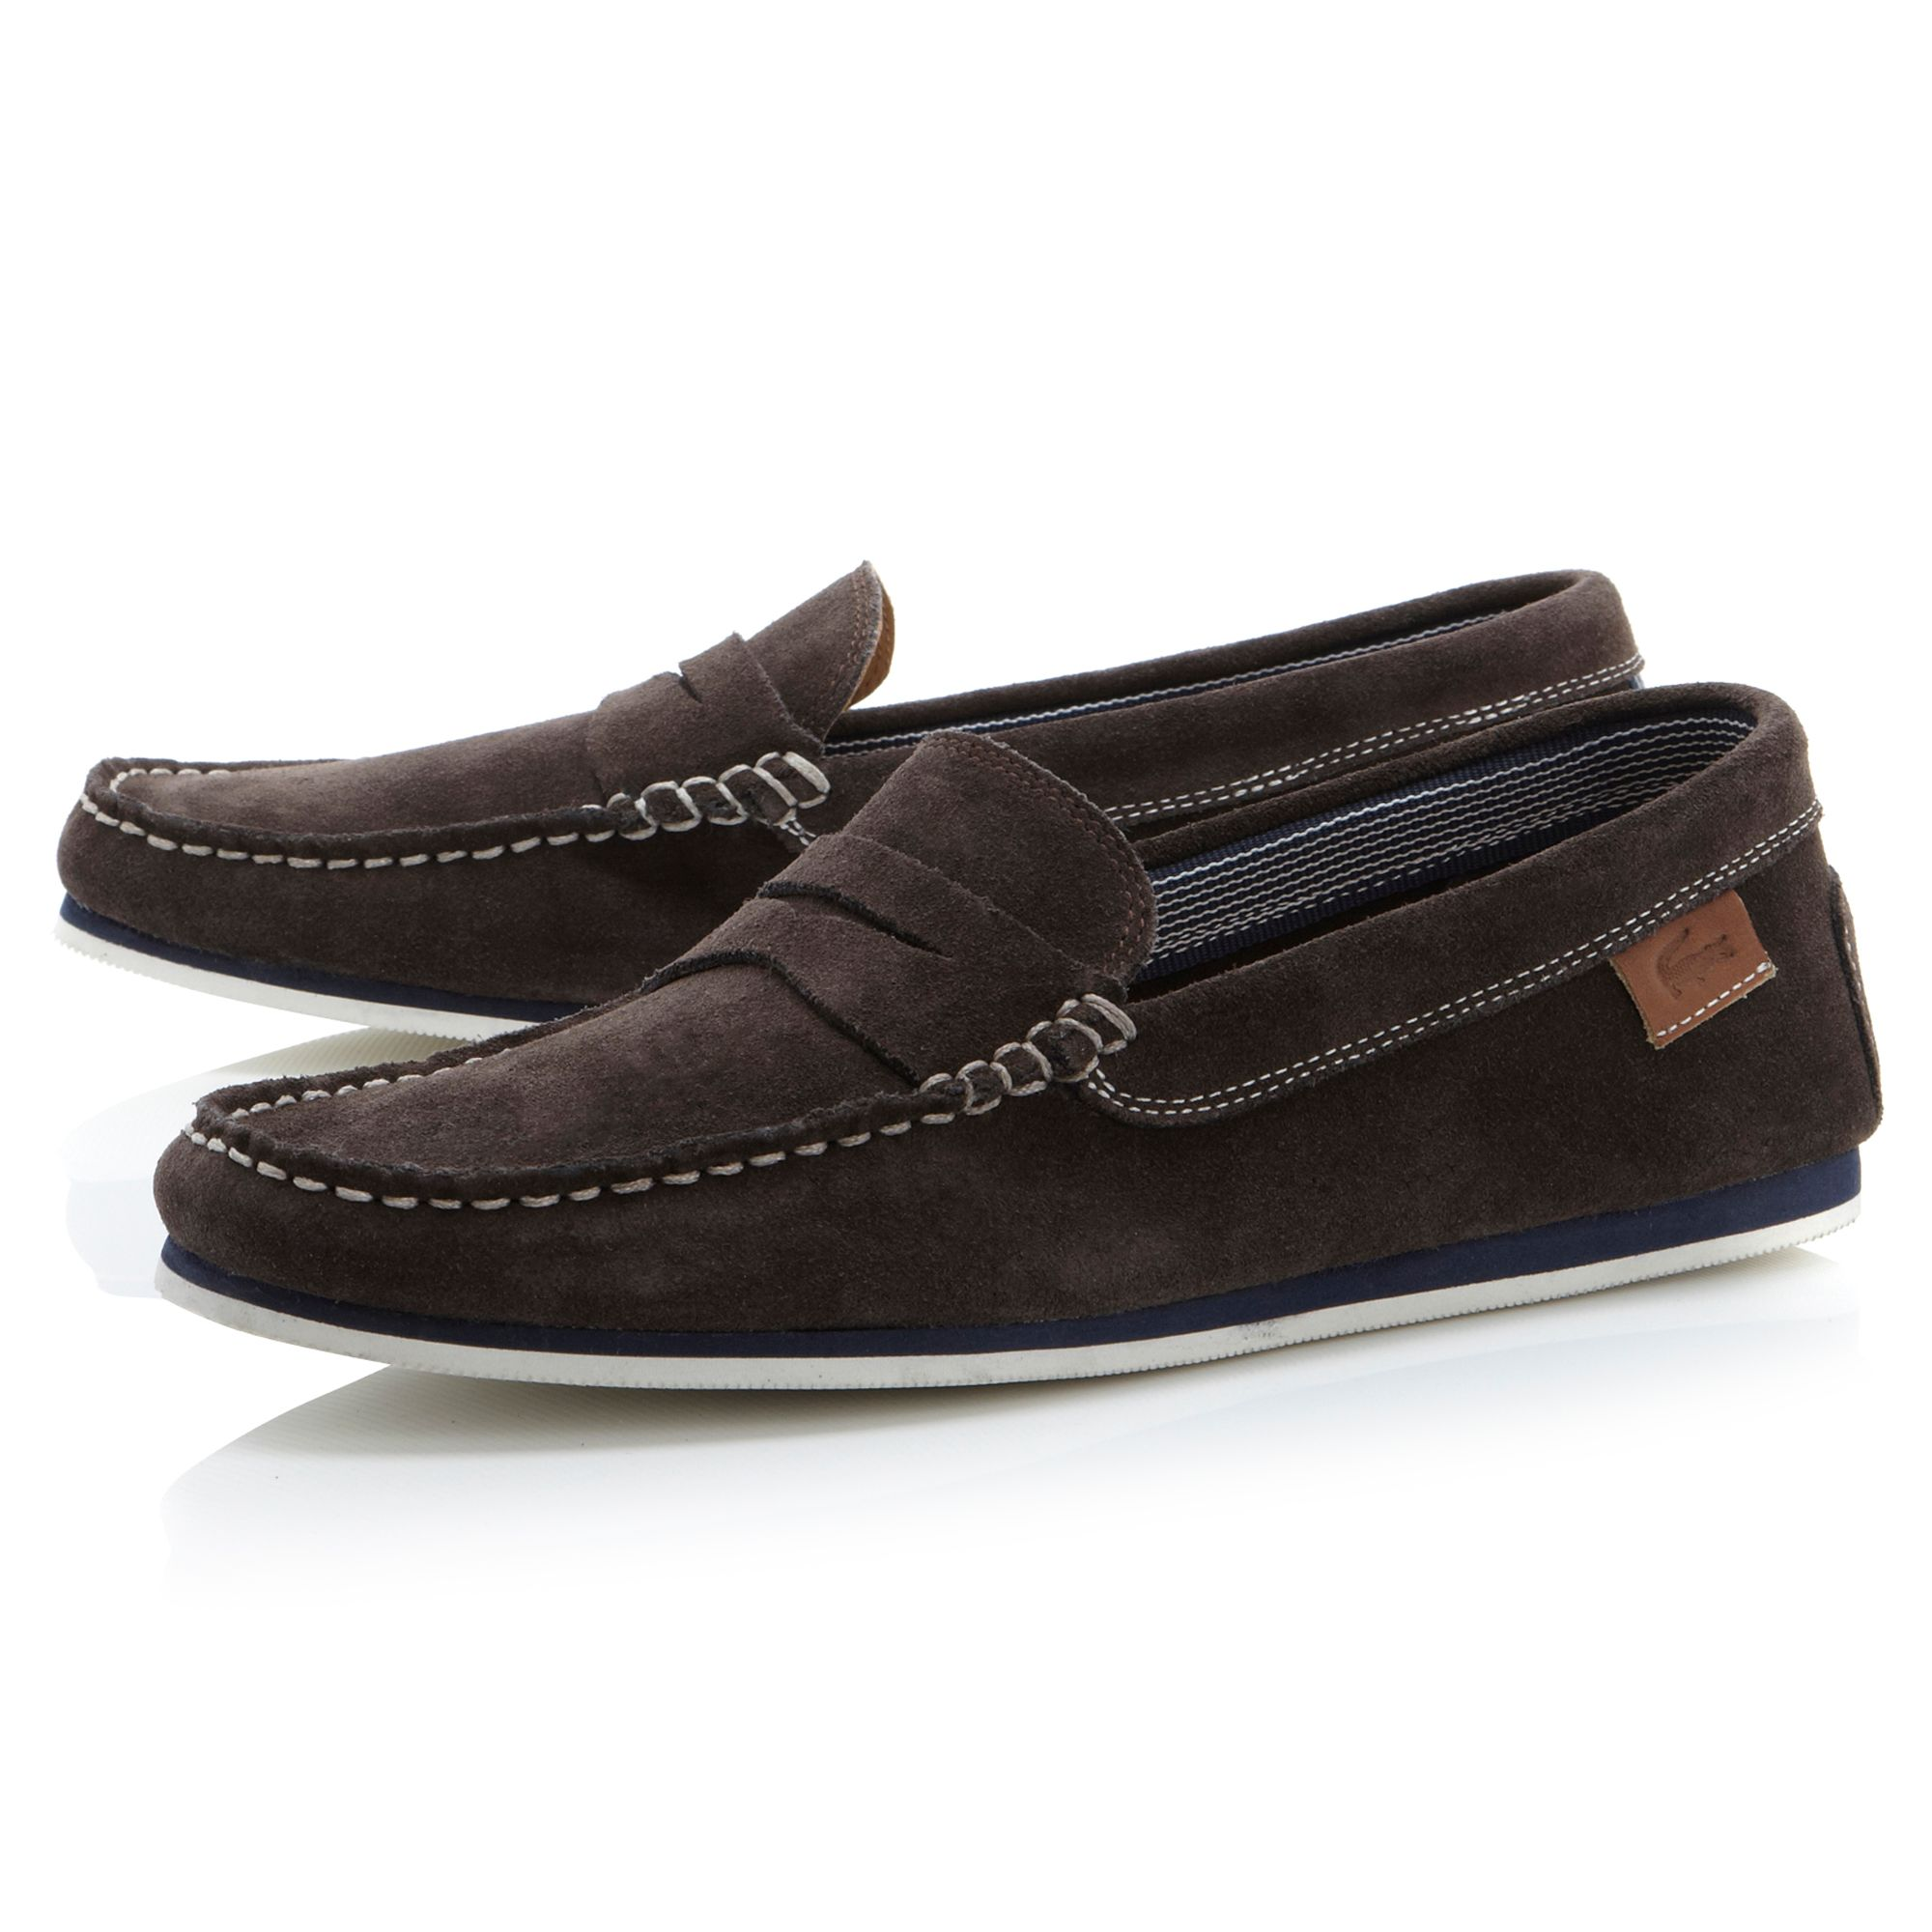 Chanler saddle loafers